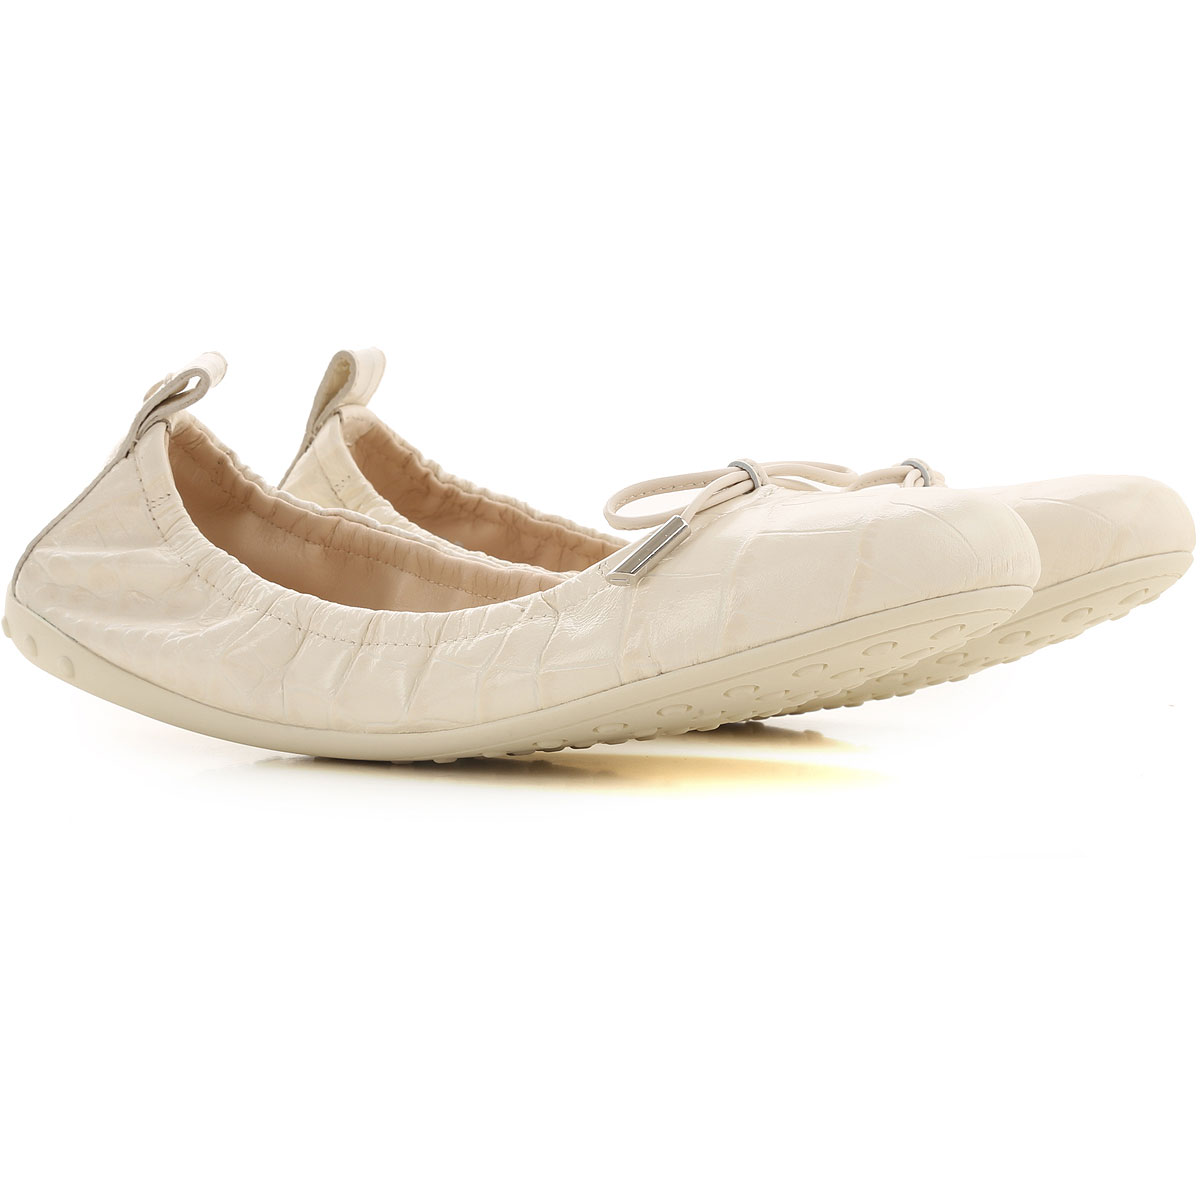 Tods Ballet Flats Ballerina Shoes for Women On Sale, mousse, Leather, 2019, 5 5.5 6 6.5 7